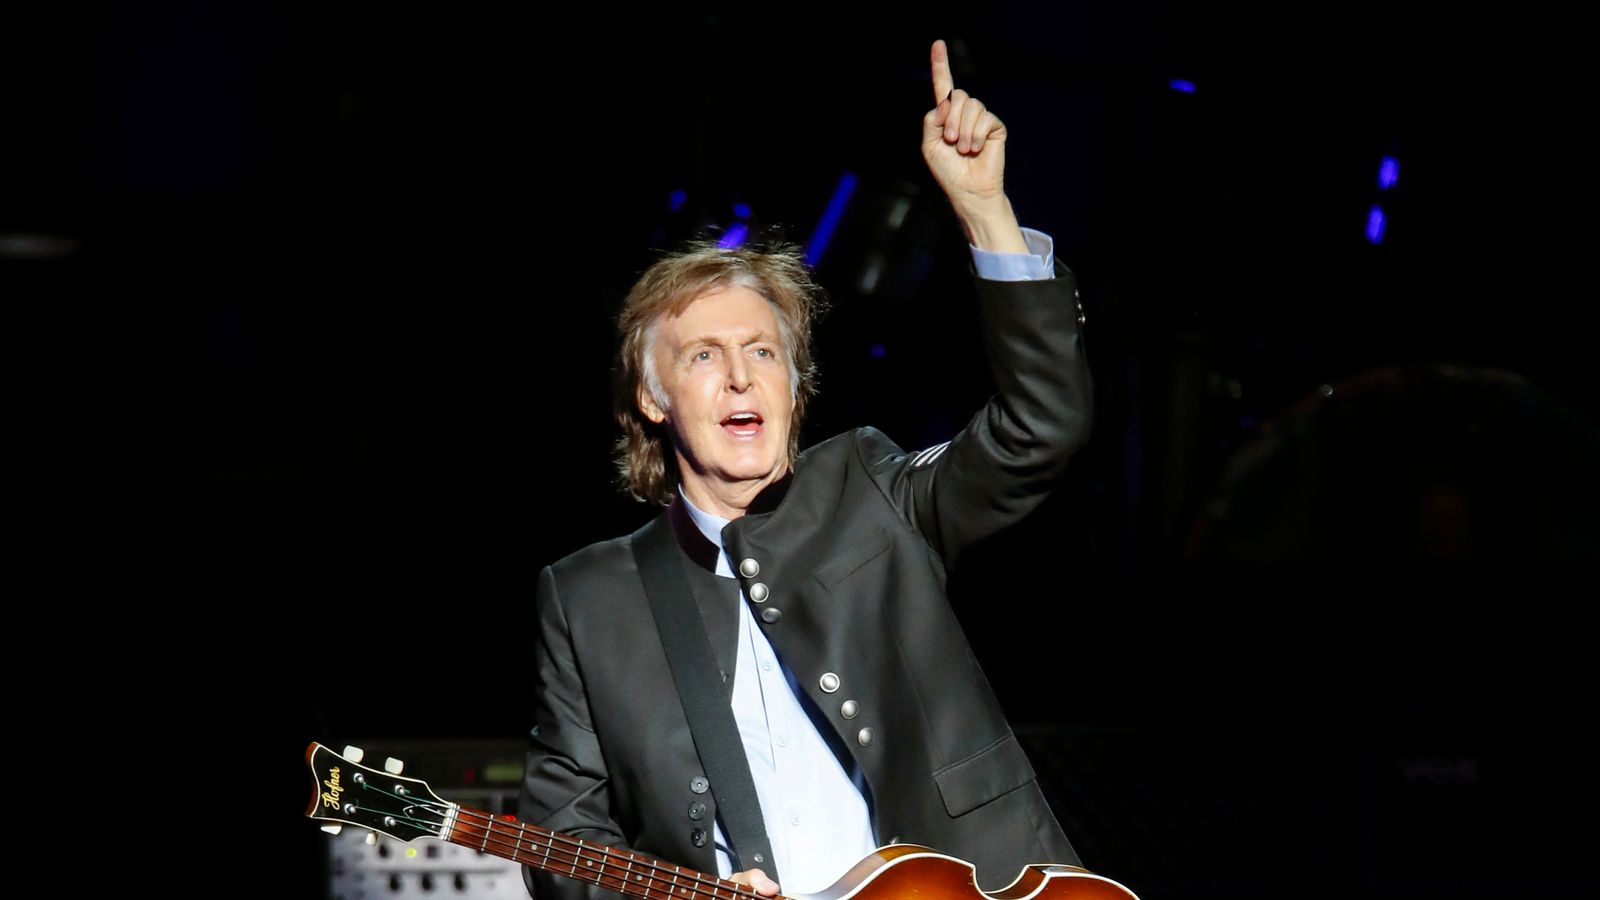 Paul McCartney tops US album chart for first time since 1982